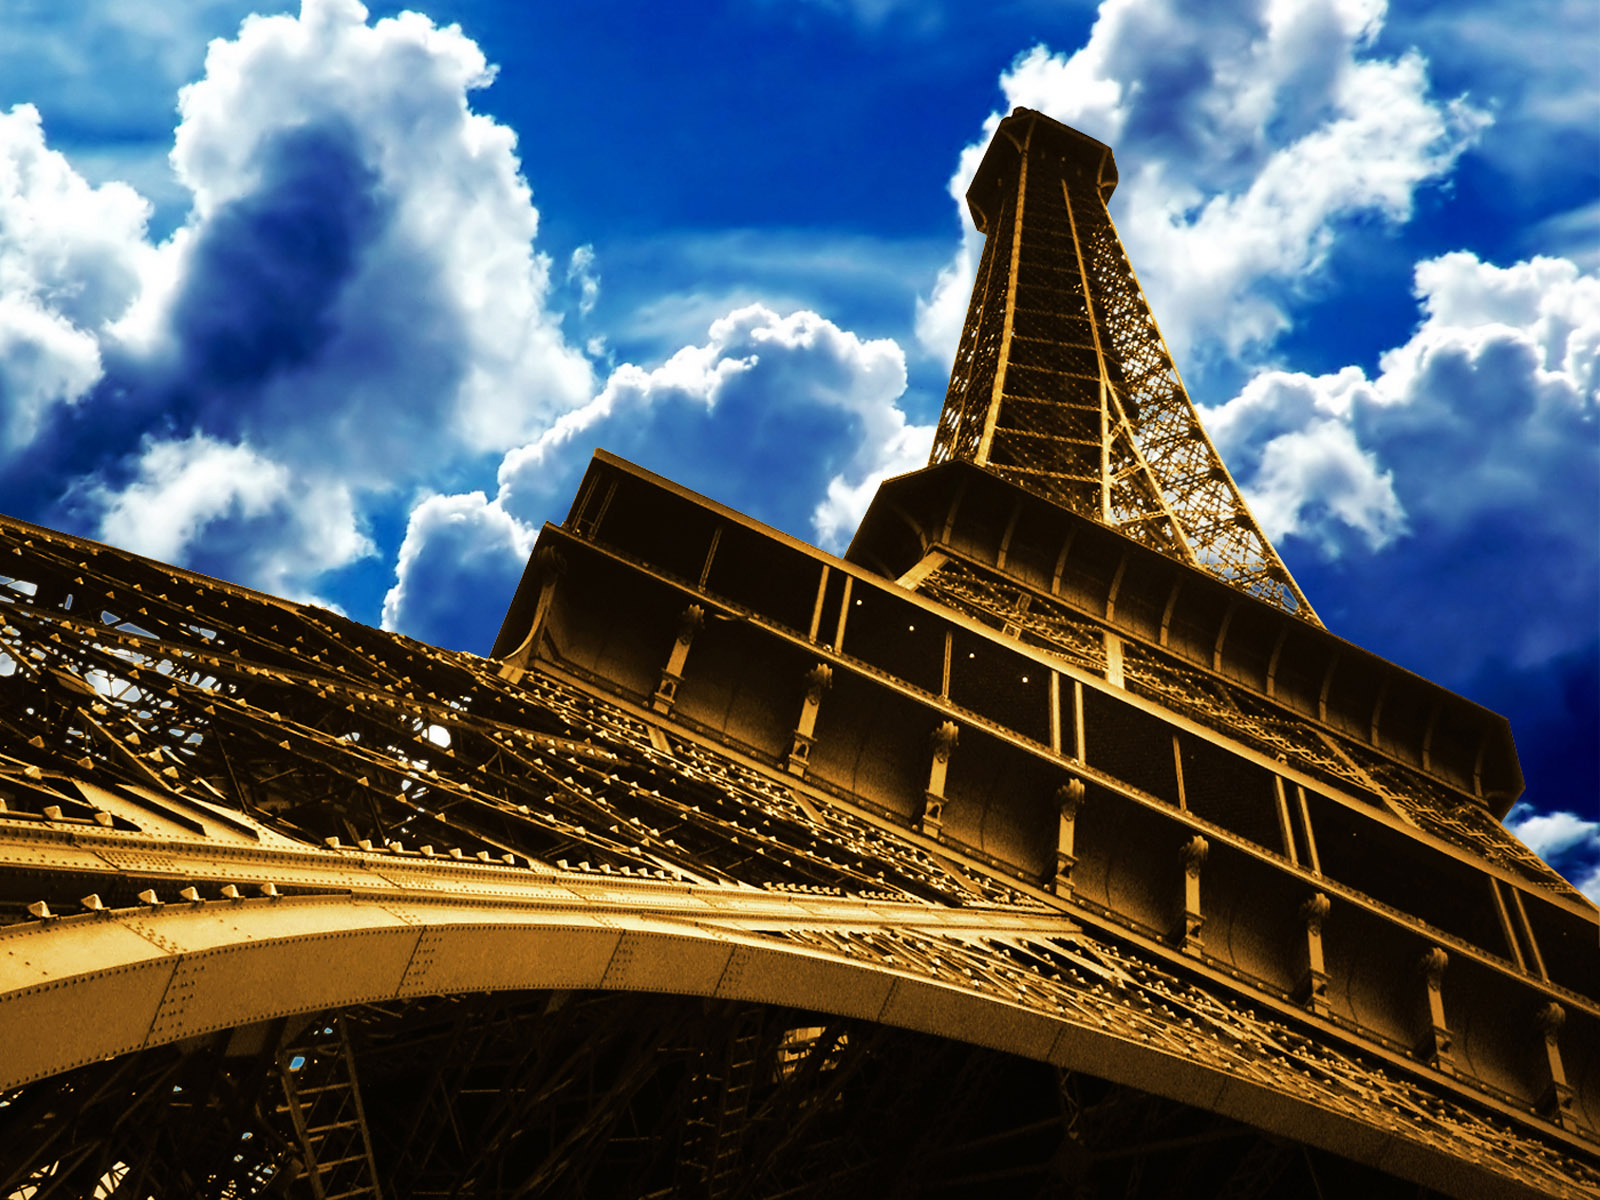 http://1.bp.blogspot.com/-8h-Qsx-f81E/T9iM0Z9X8II/AAAAAAAAAUA/f4qn_Yg7FxI/s1600/nature-paris-eiffel-tower-backgrounds-wallpapers.jpg